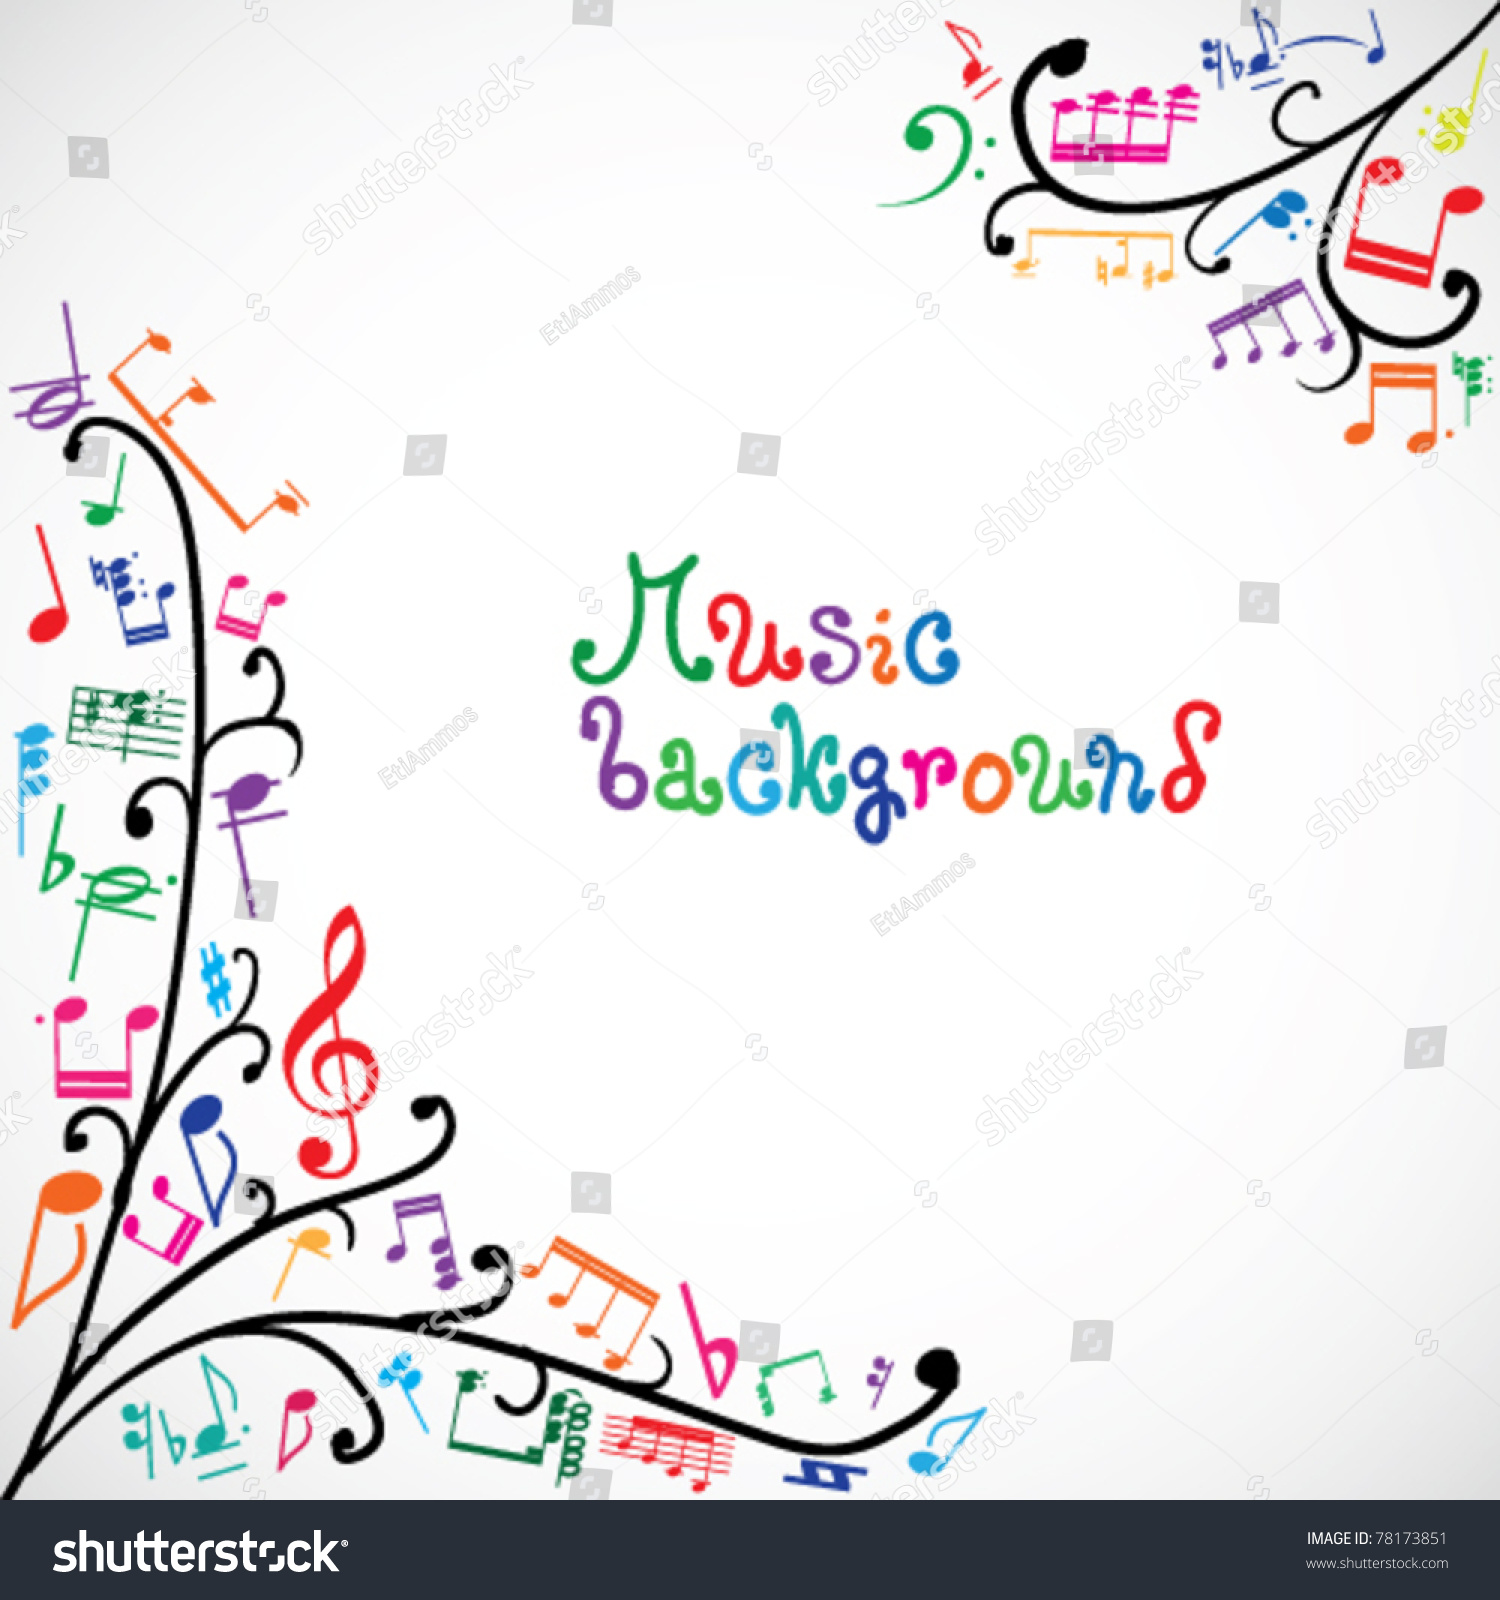 music notes backgrounds floral - photo #18